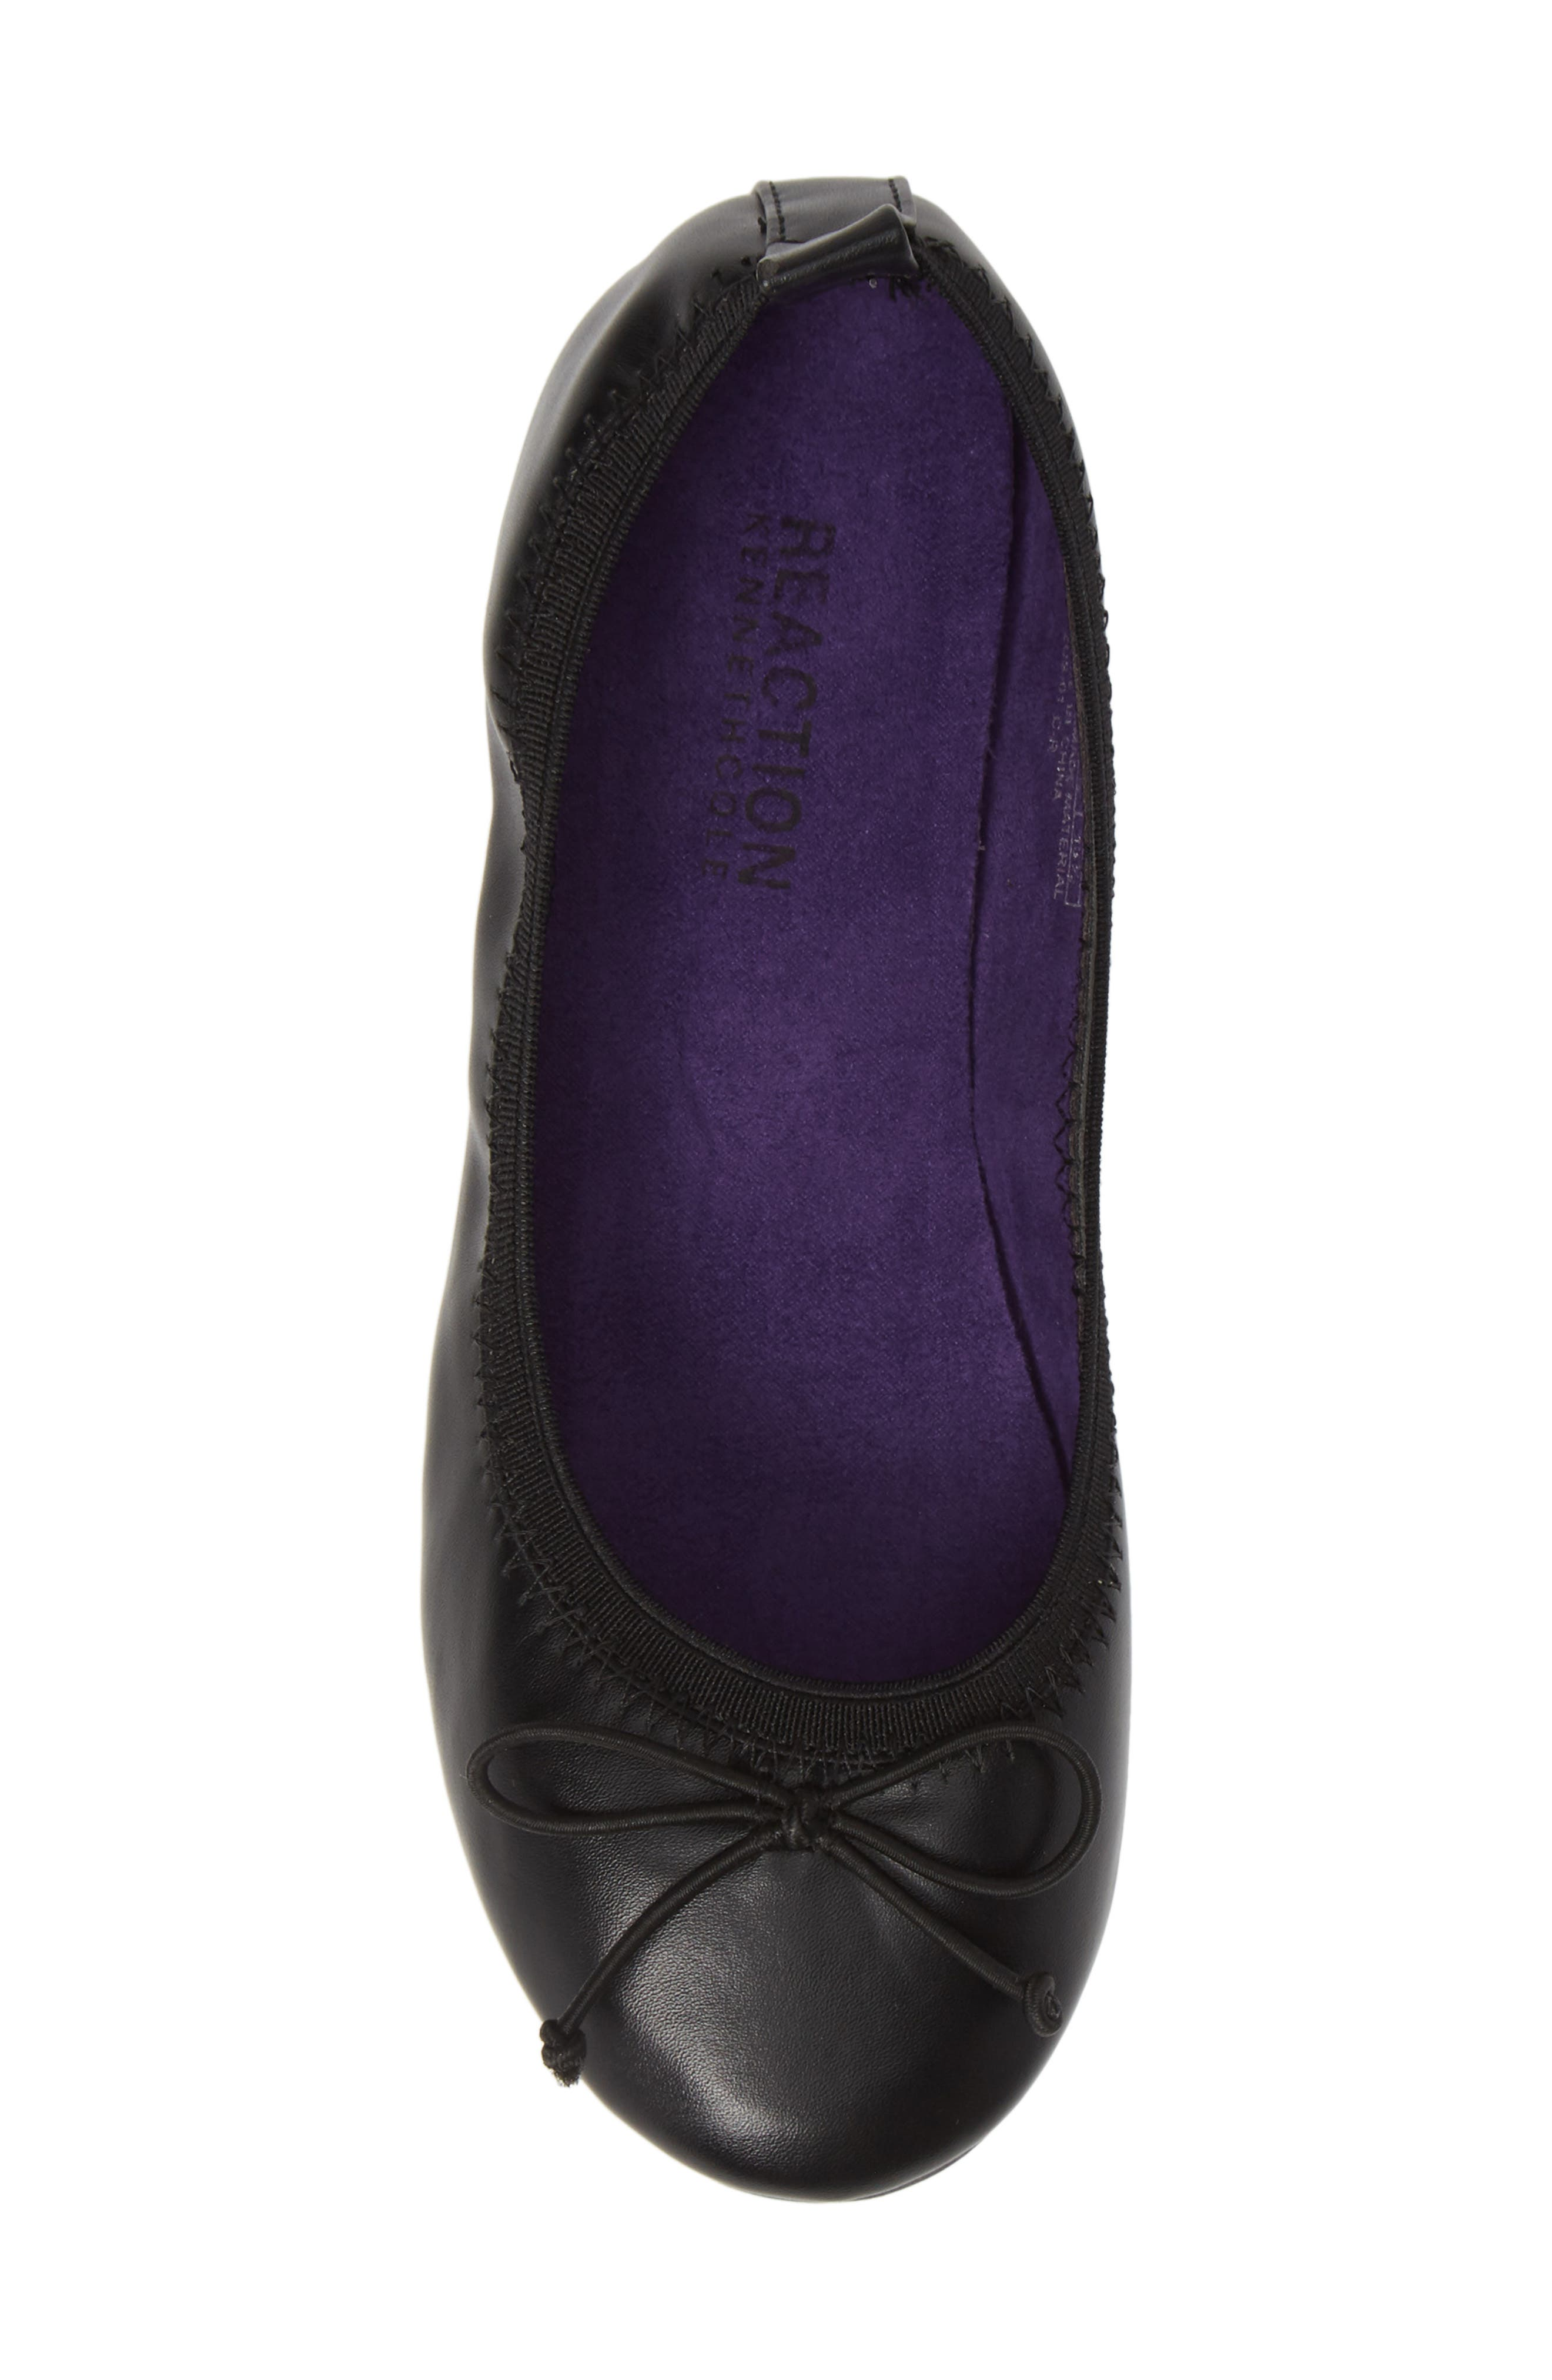 Copy Tap Ballet Flat,                             Alternate thumbnail 5, color,                             BLACK